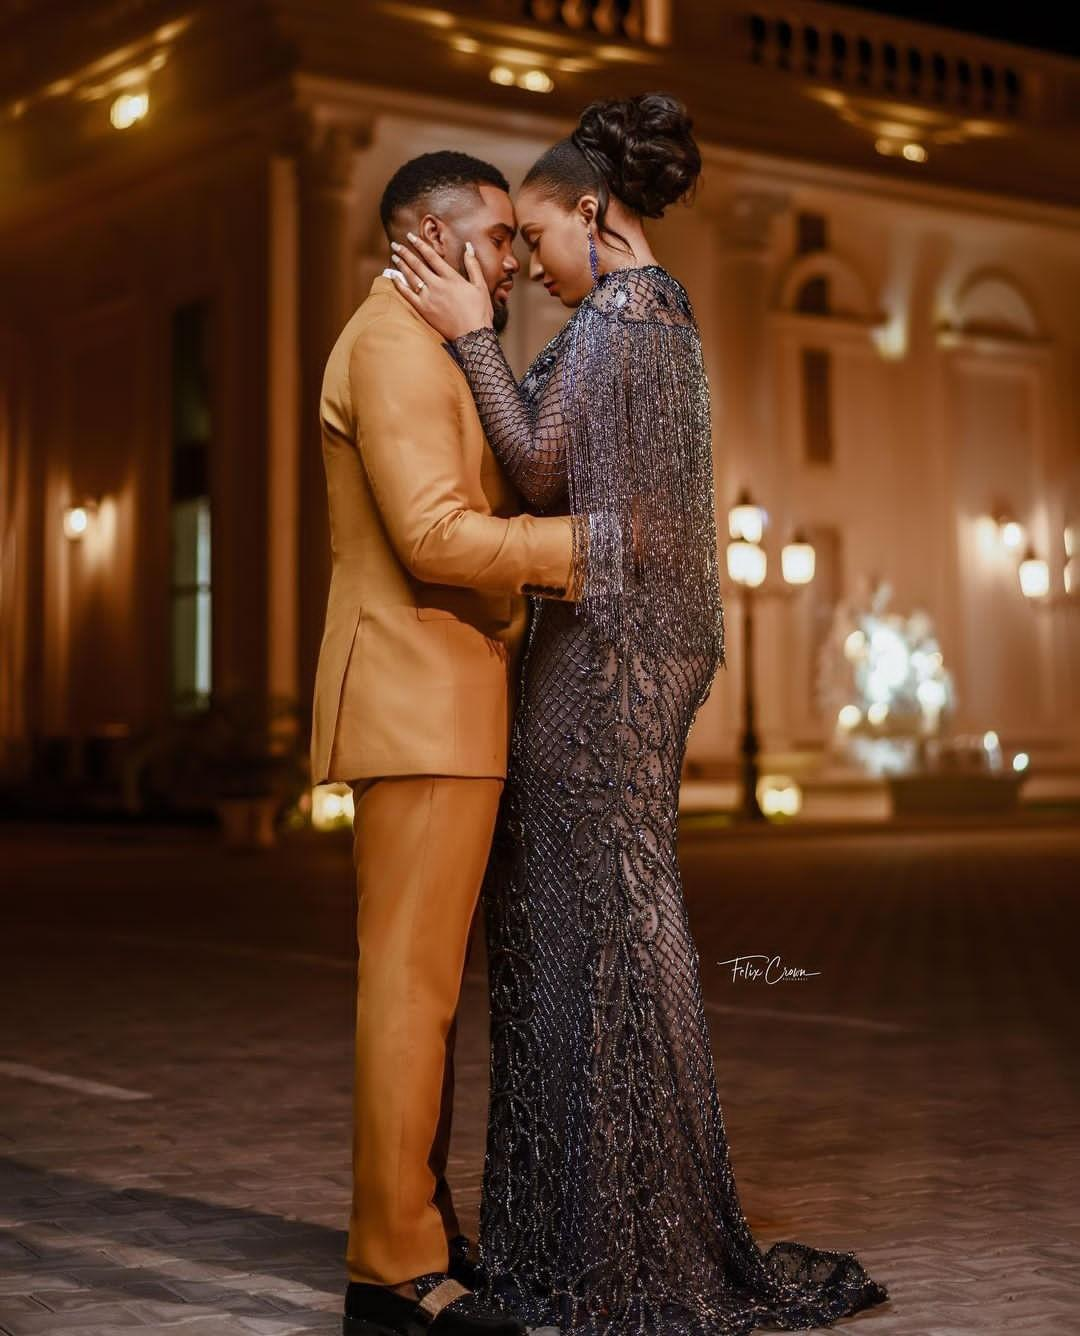 Williams Uchemba Weds fiancée This Weekend, See Pre-Wedding Photos